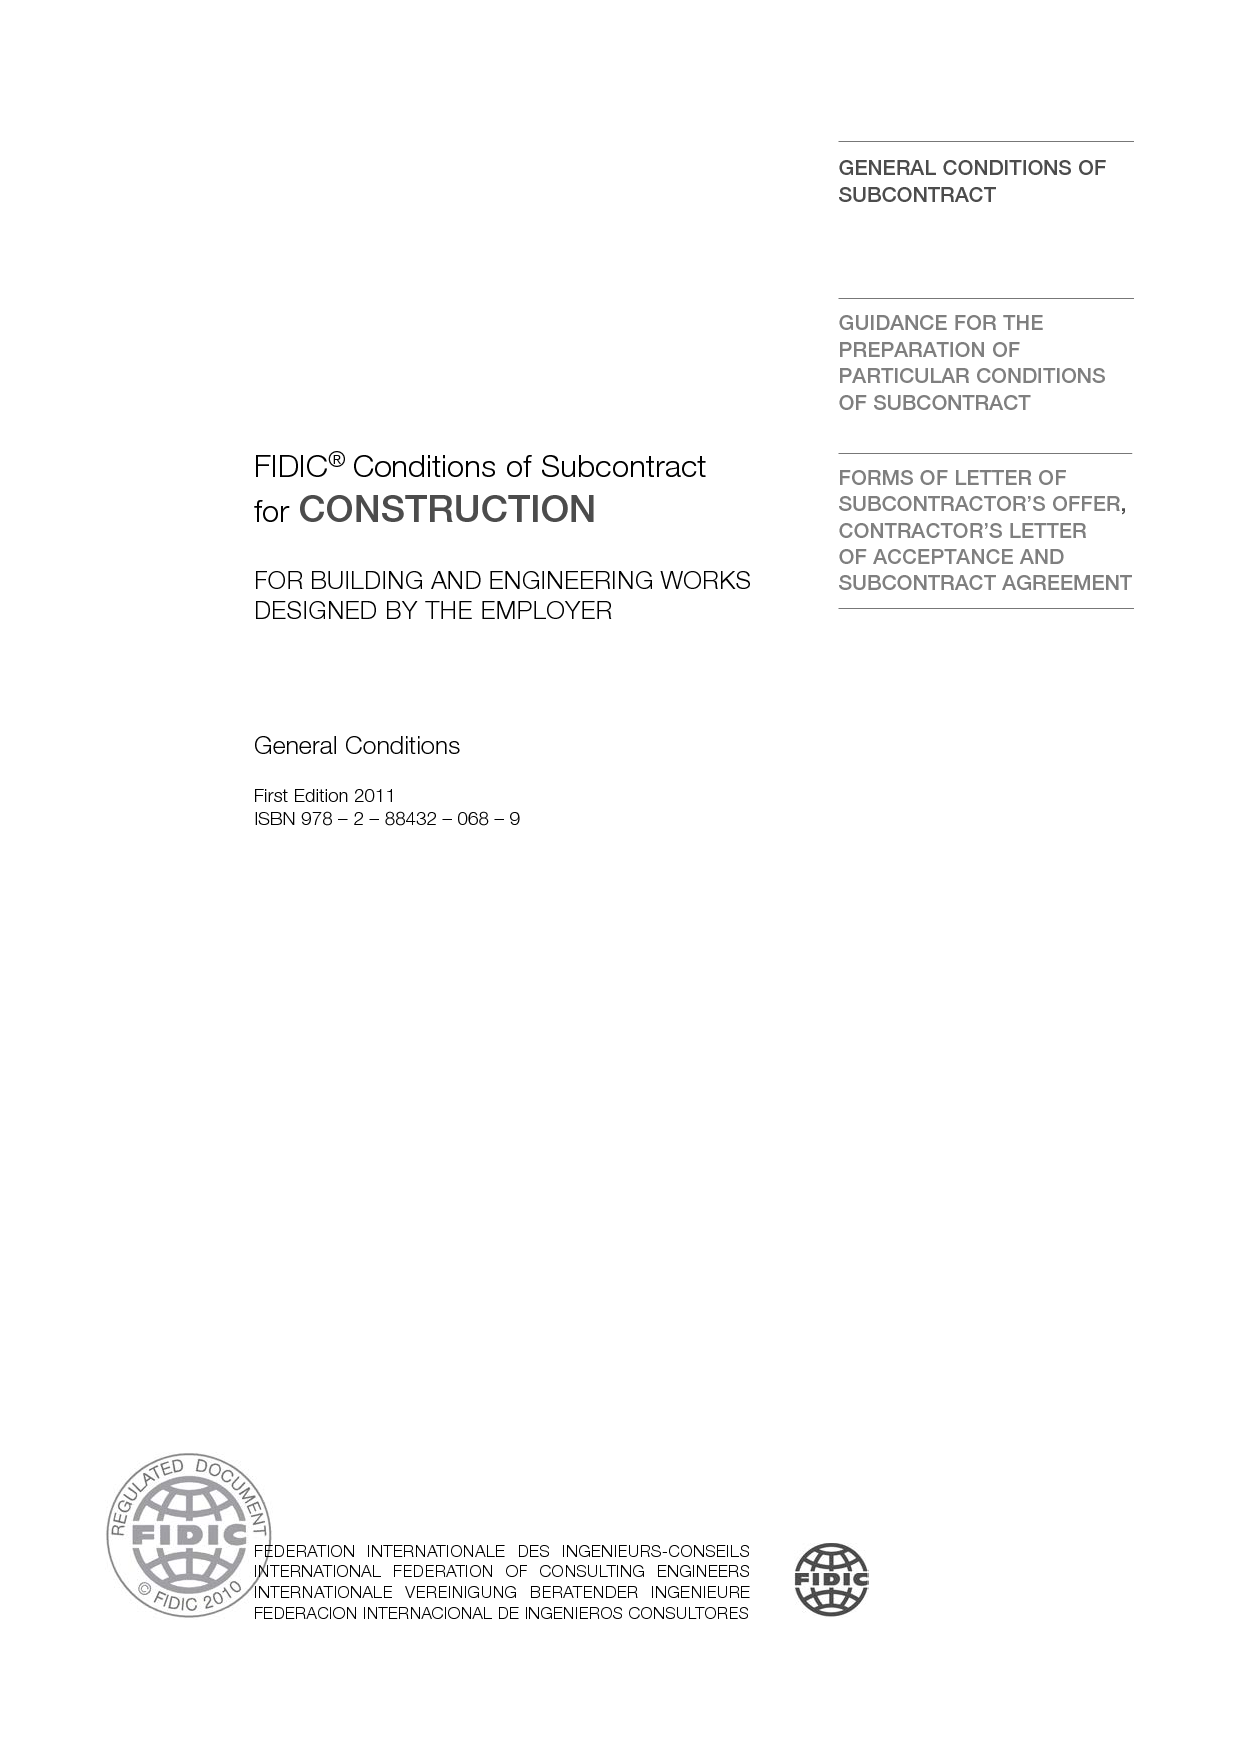 Construction 1999 Red Book Subcontract 1st Ed 2011